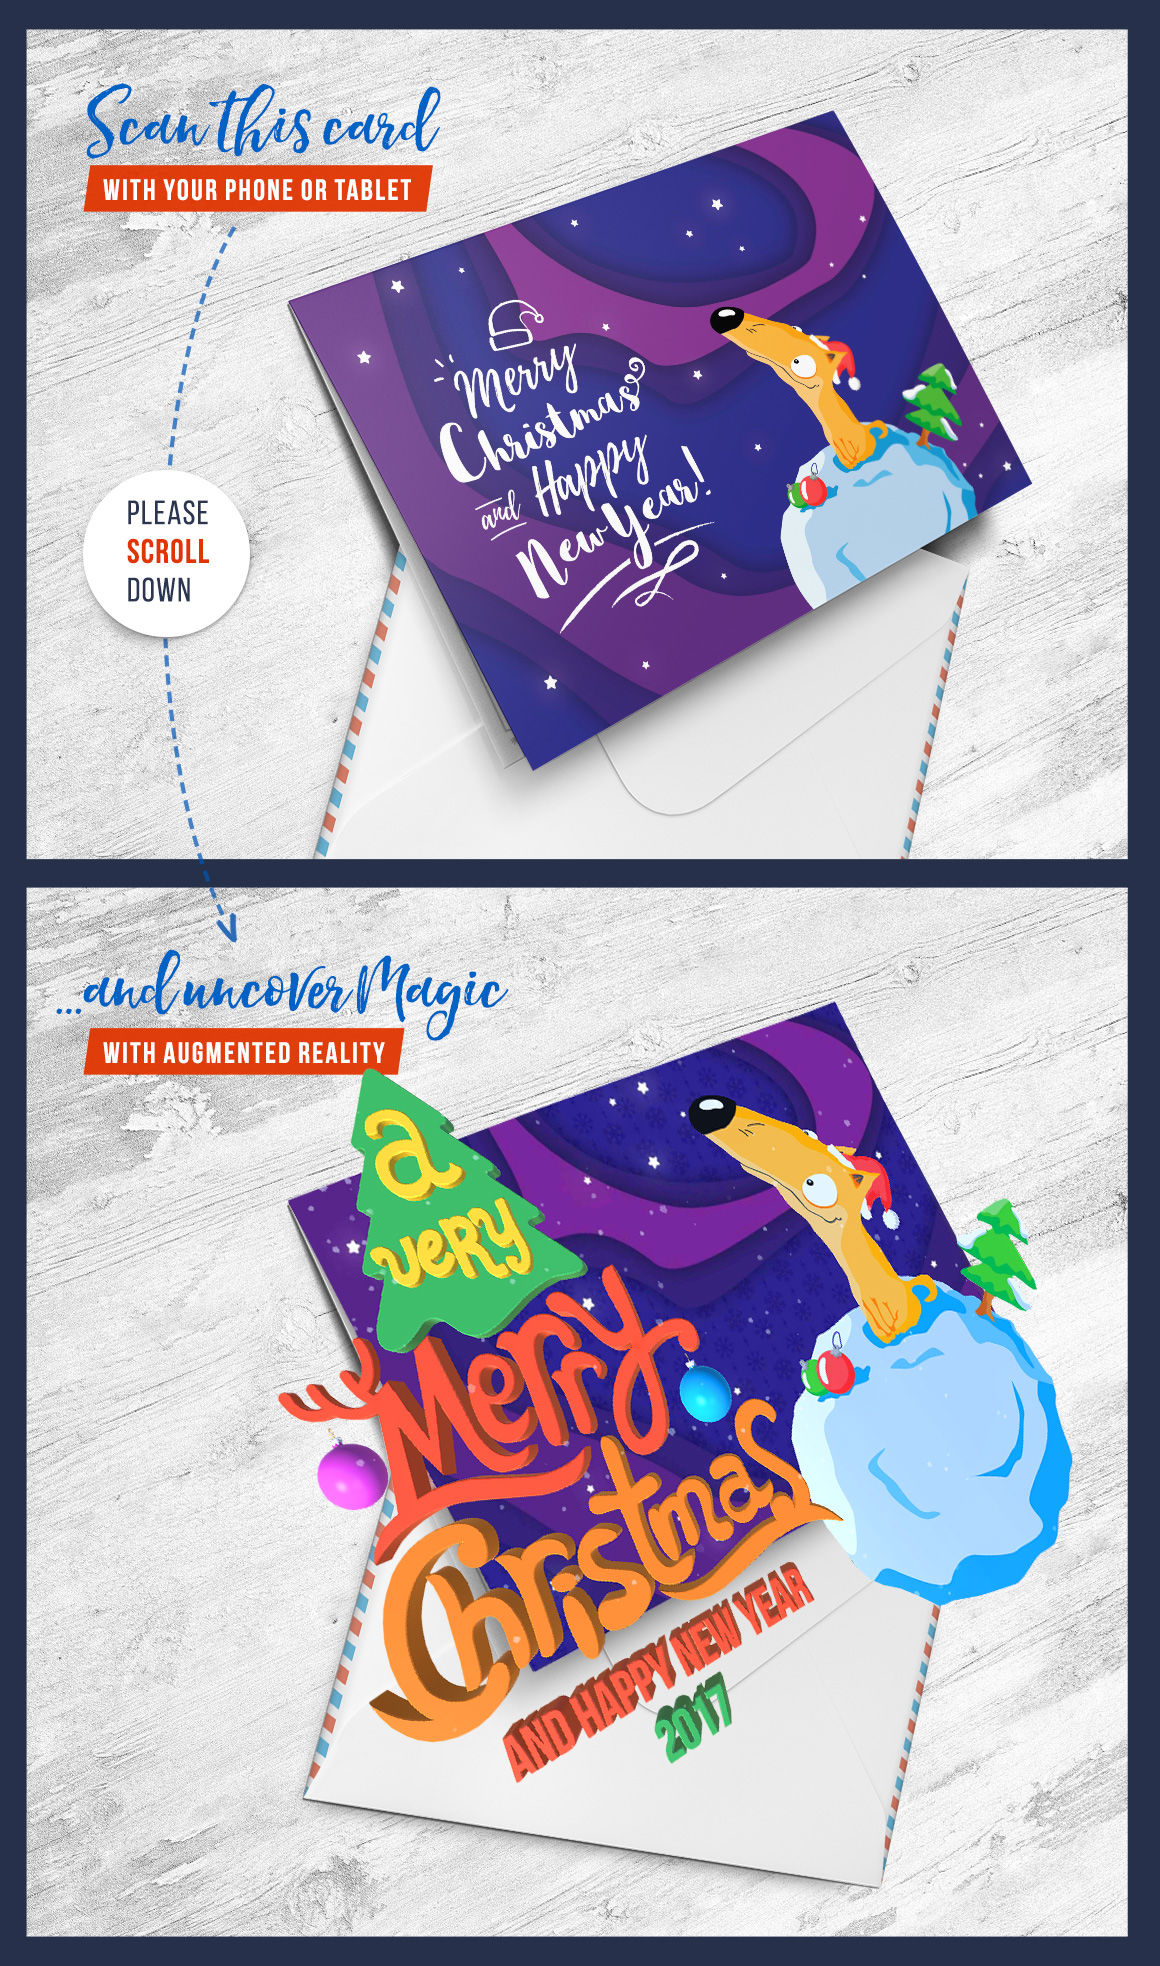 Christmas Card With Augmented Reality Android Edition By Nuoka